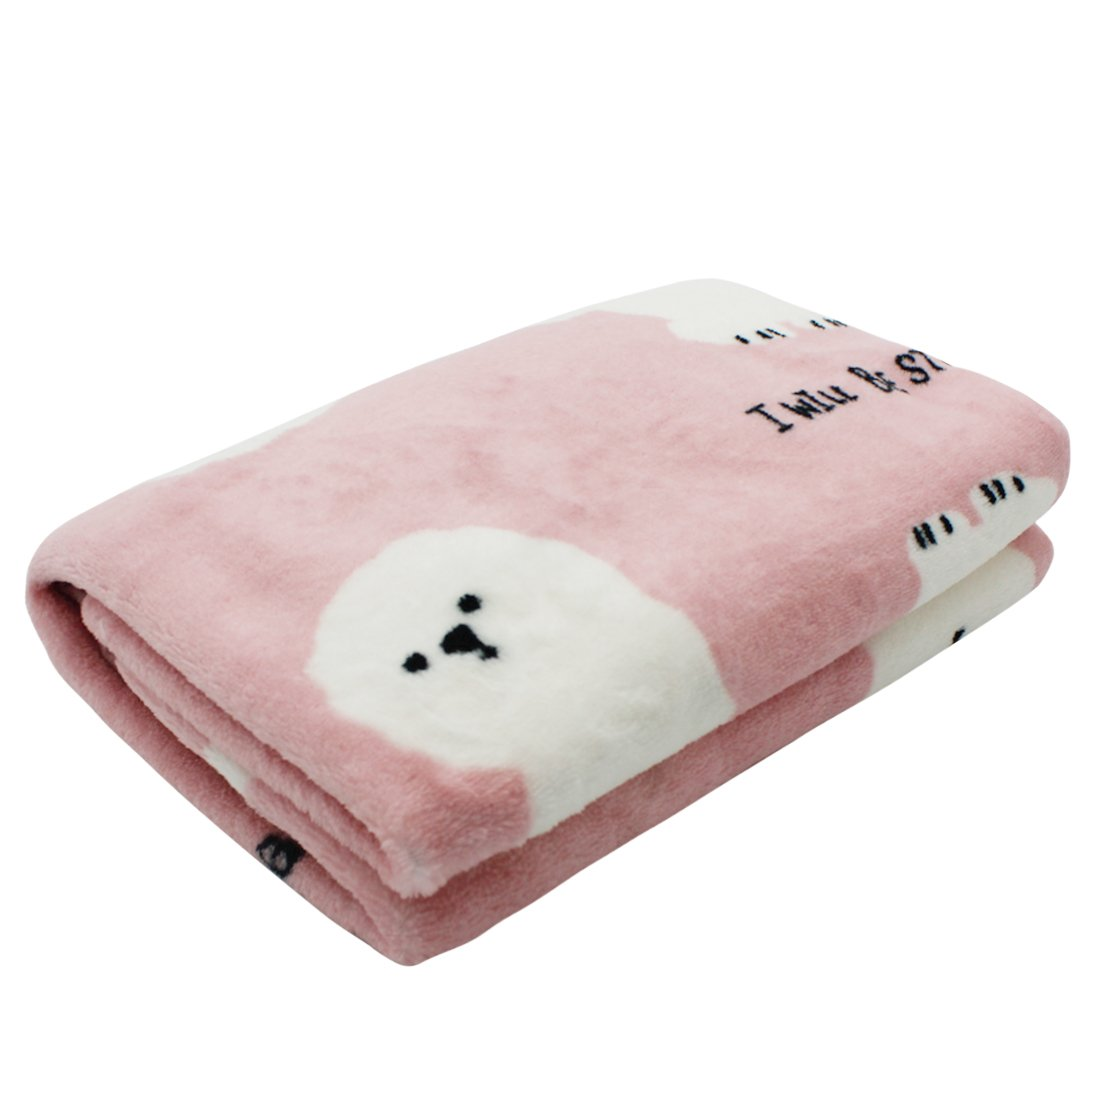 (Bichon) Scheppend Cosy Cuddly Pet Fleece Blanket Dogs Cats Bed Throws for Couch,Car Backseat,Crate,Kennel and Carrier